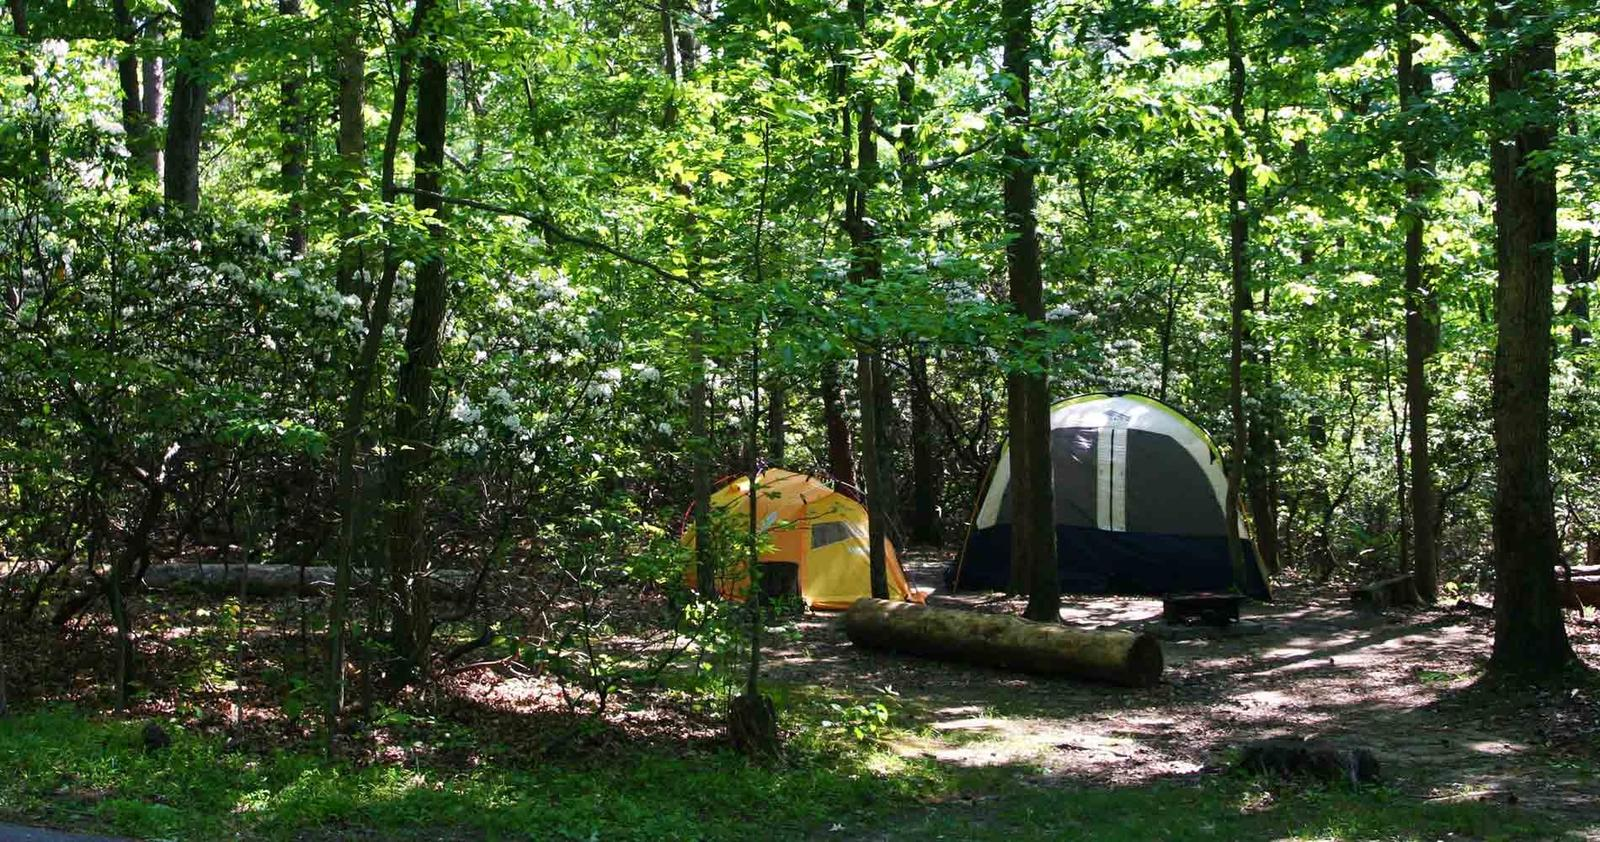 A tent in the B loop RV of the Greenbelt Park, Maryland campgroundEnjoy a beautiful campsite in the Urban Oasis just 12 miles from the Nation's Capital